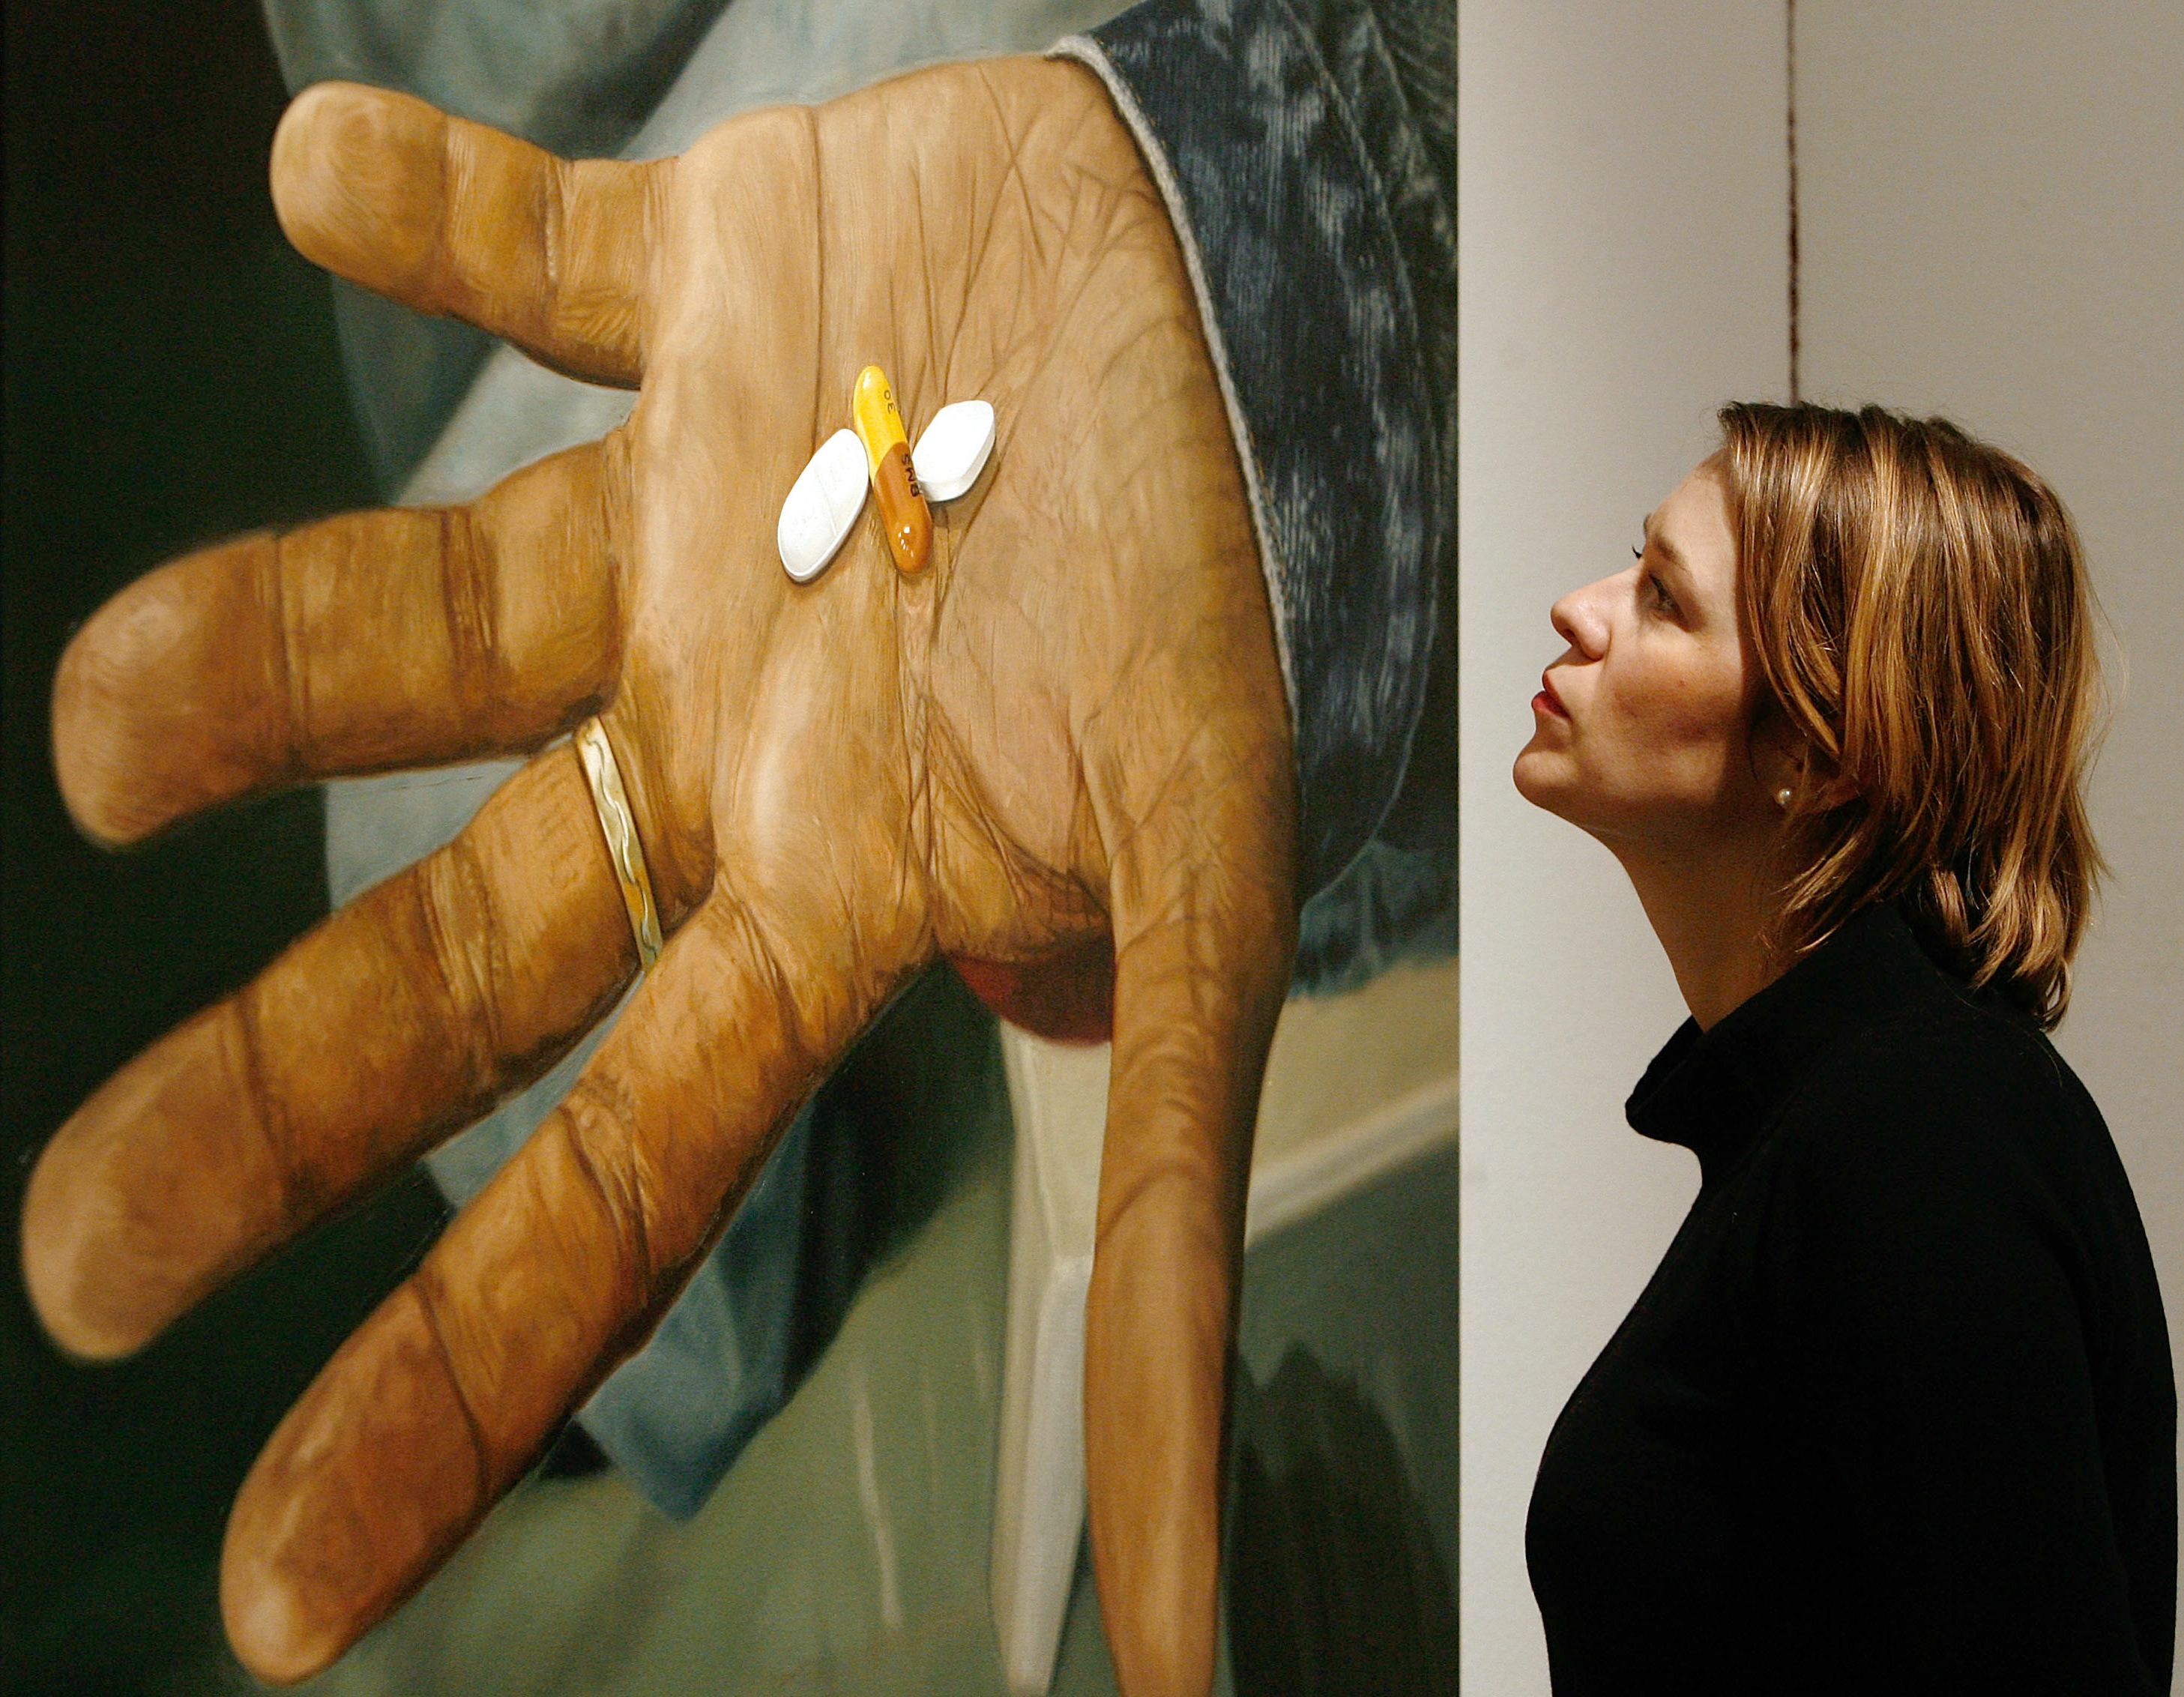 Can Going to a Museum Help Your Heart Condition? In a New Trial, Doctors Are Prescribing Art.